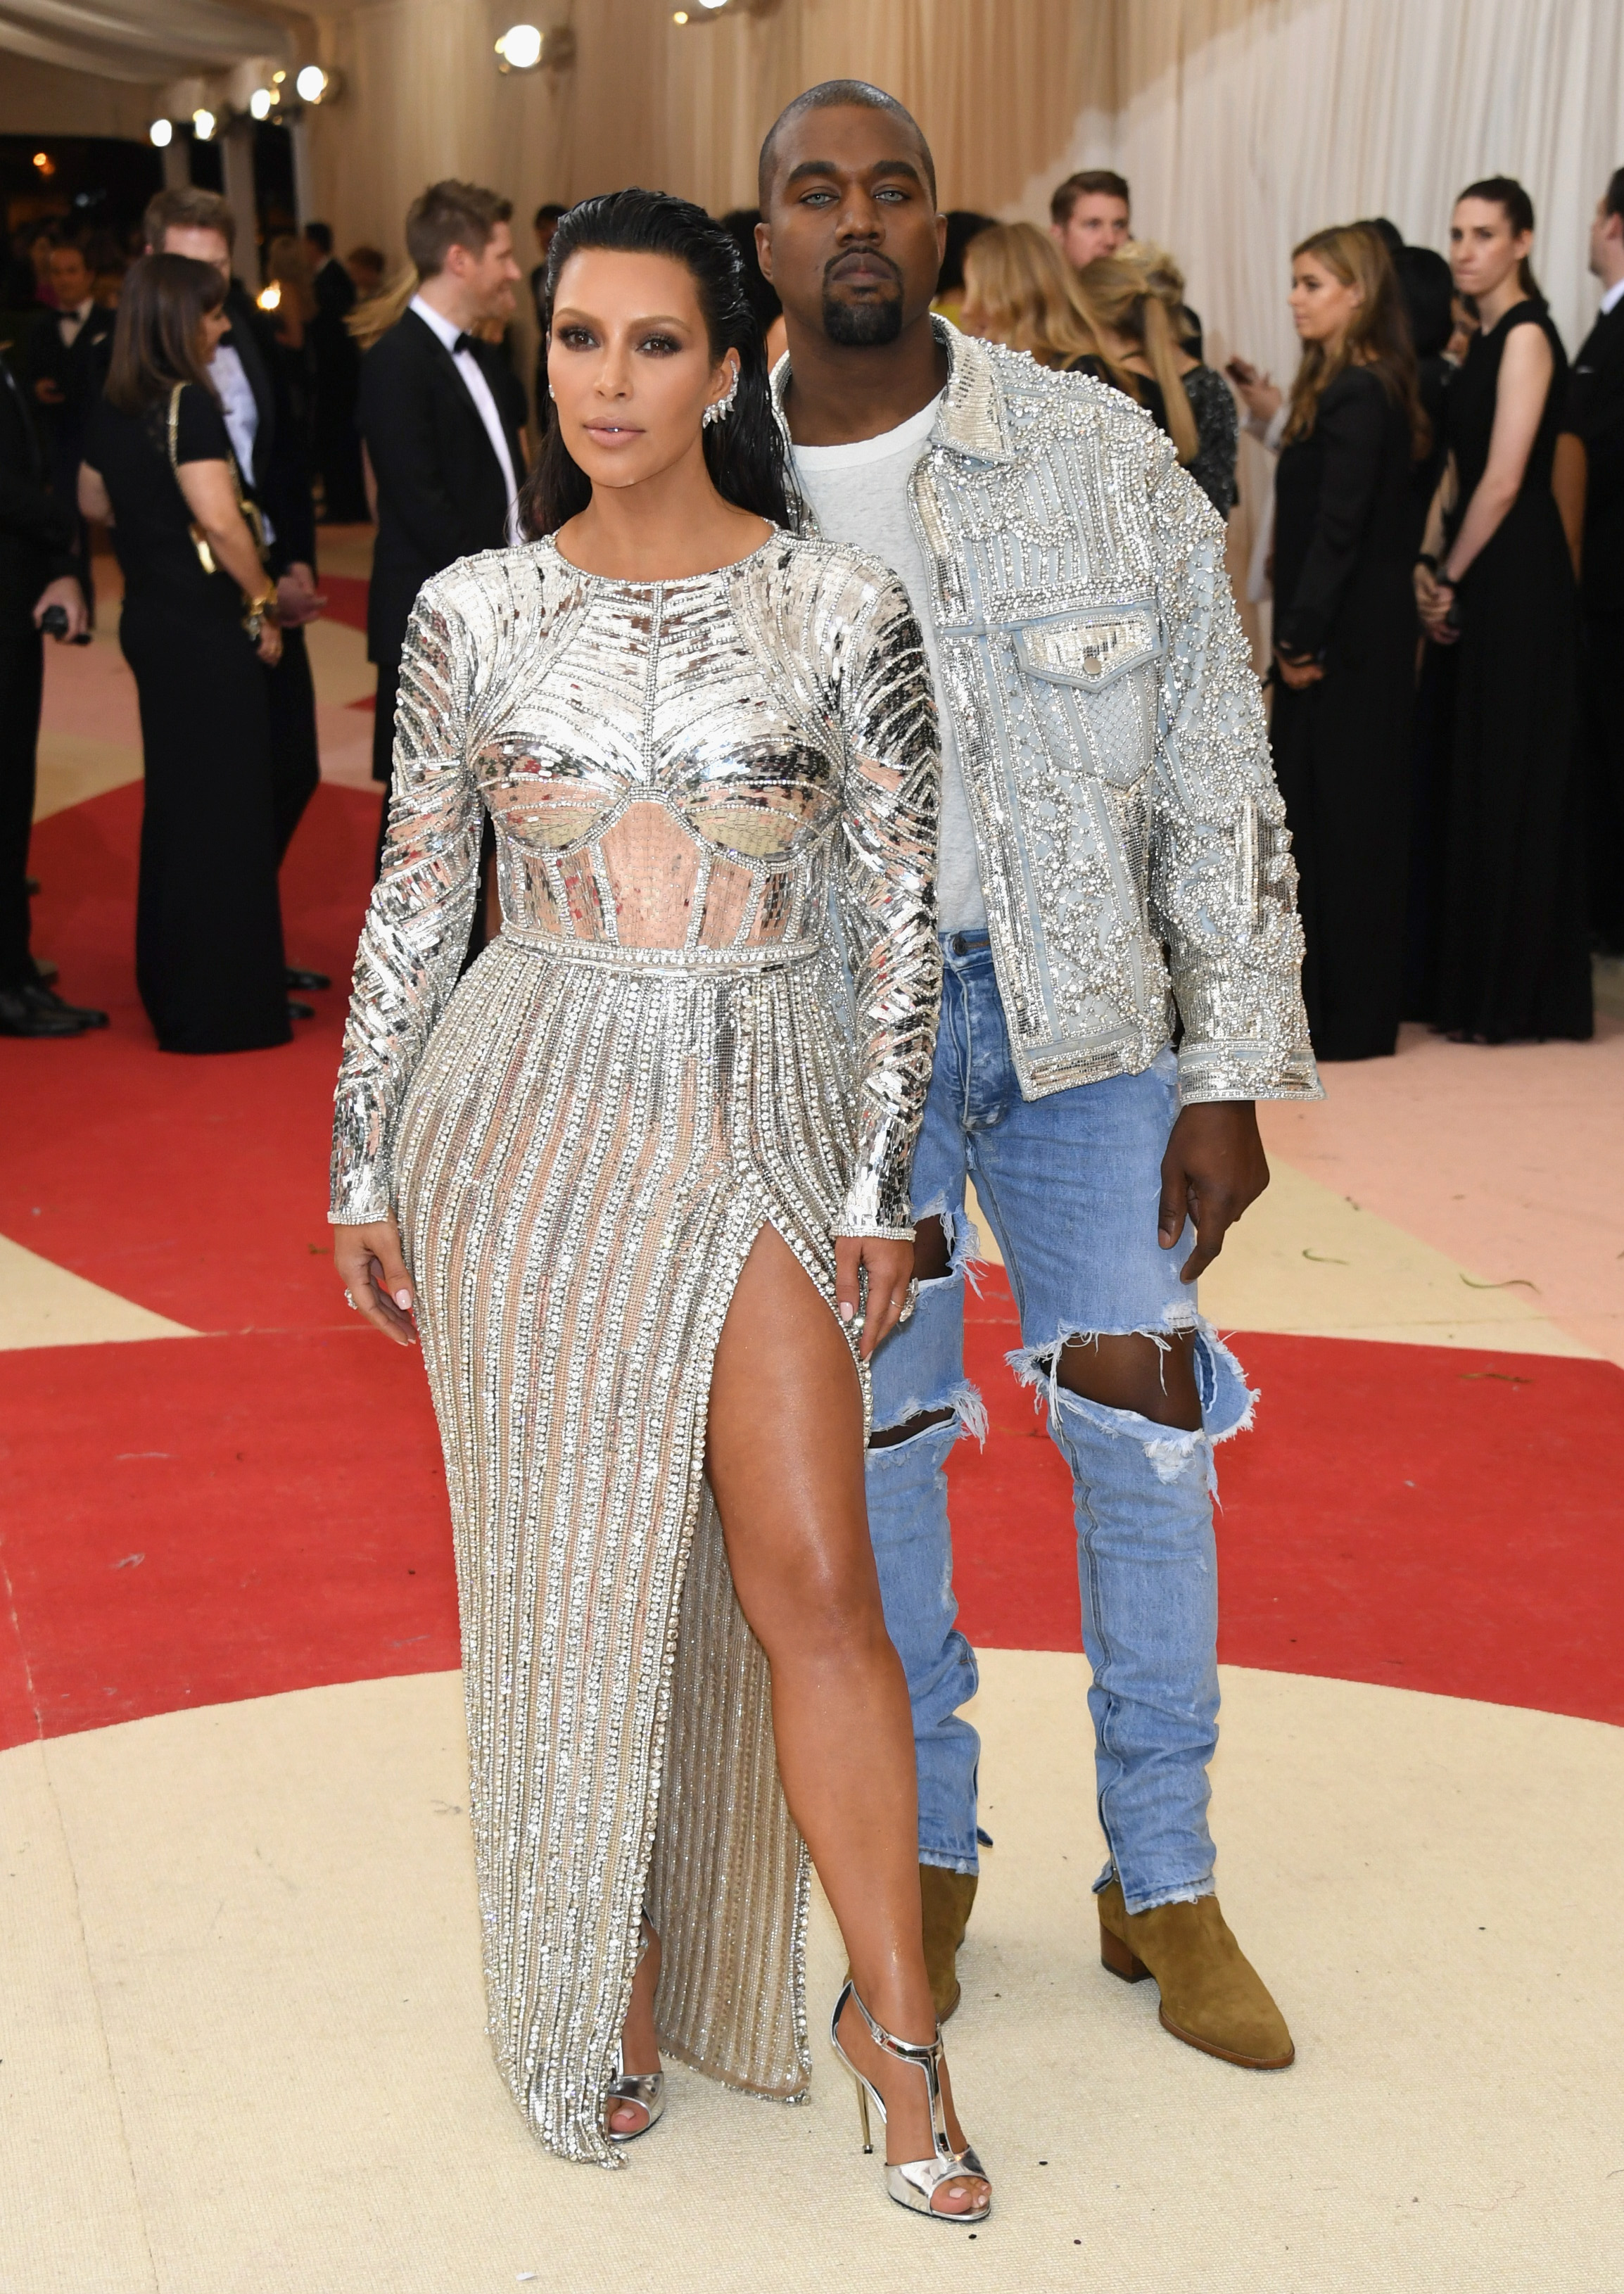 Kim Kardashian and Kanye West attend  Manus x Machina: Fashion In An Age Of Technology  Costume Institute Gala at Metropolitan Museum of Art on May 2, 2016 in New York City.